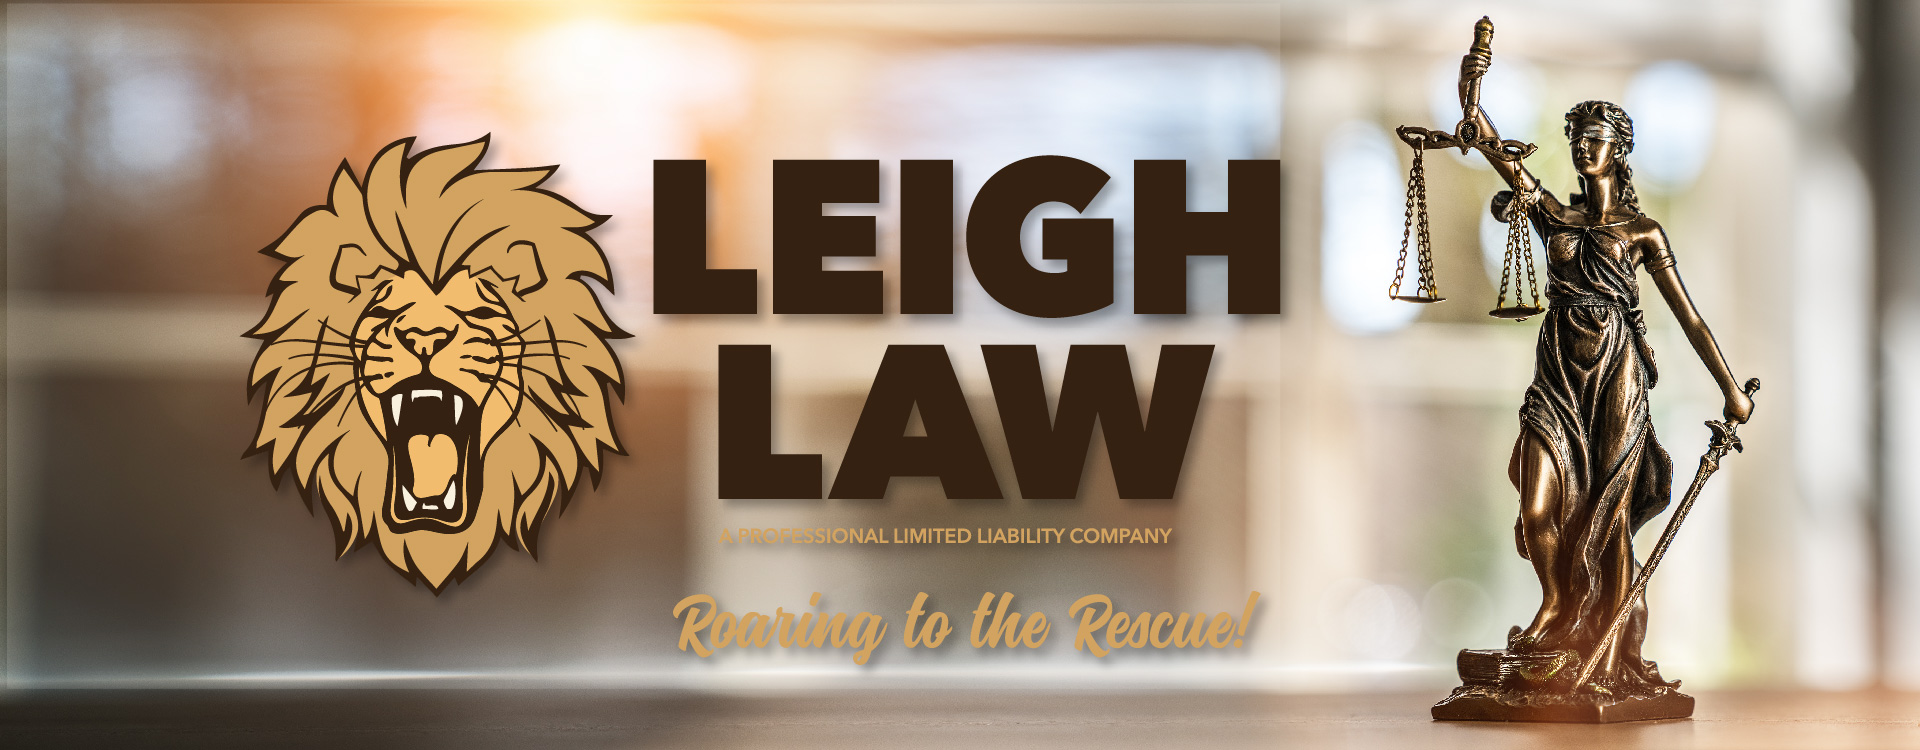 Home of Leigh Law. Roaring to the Rescue!